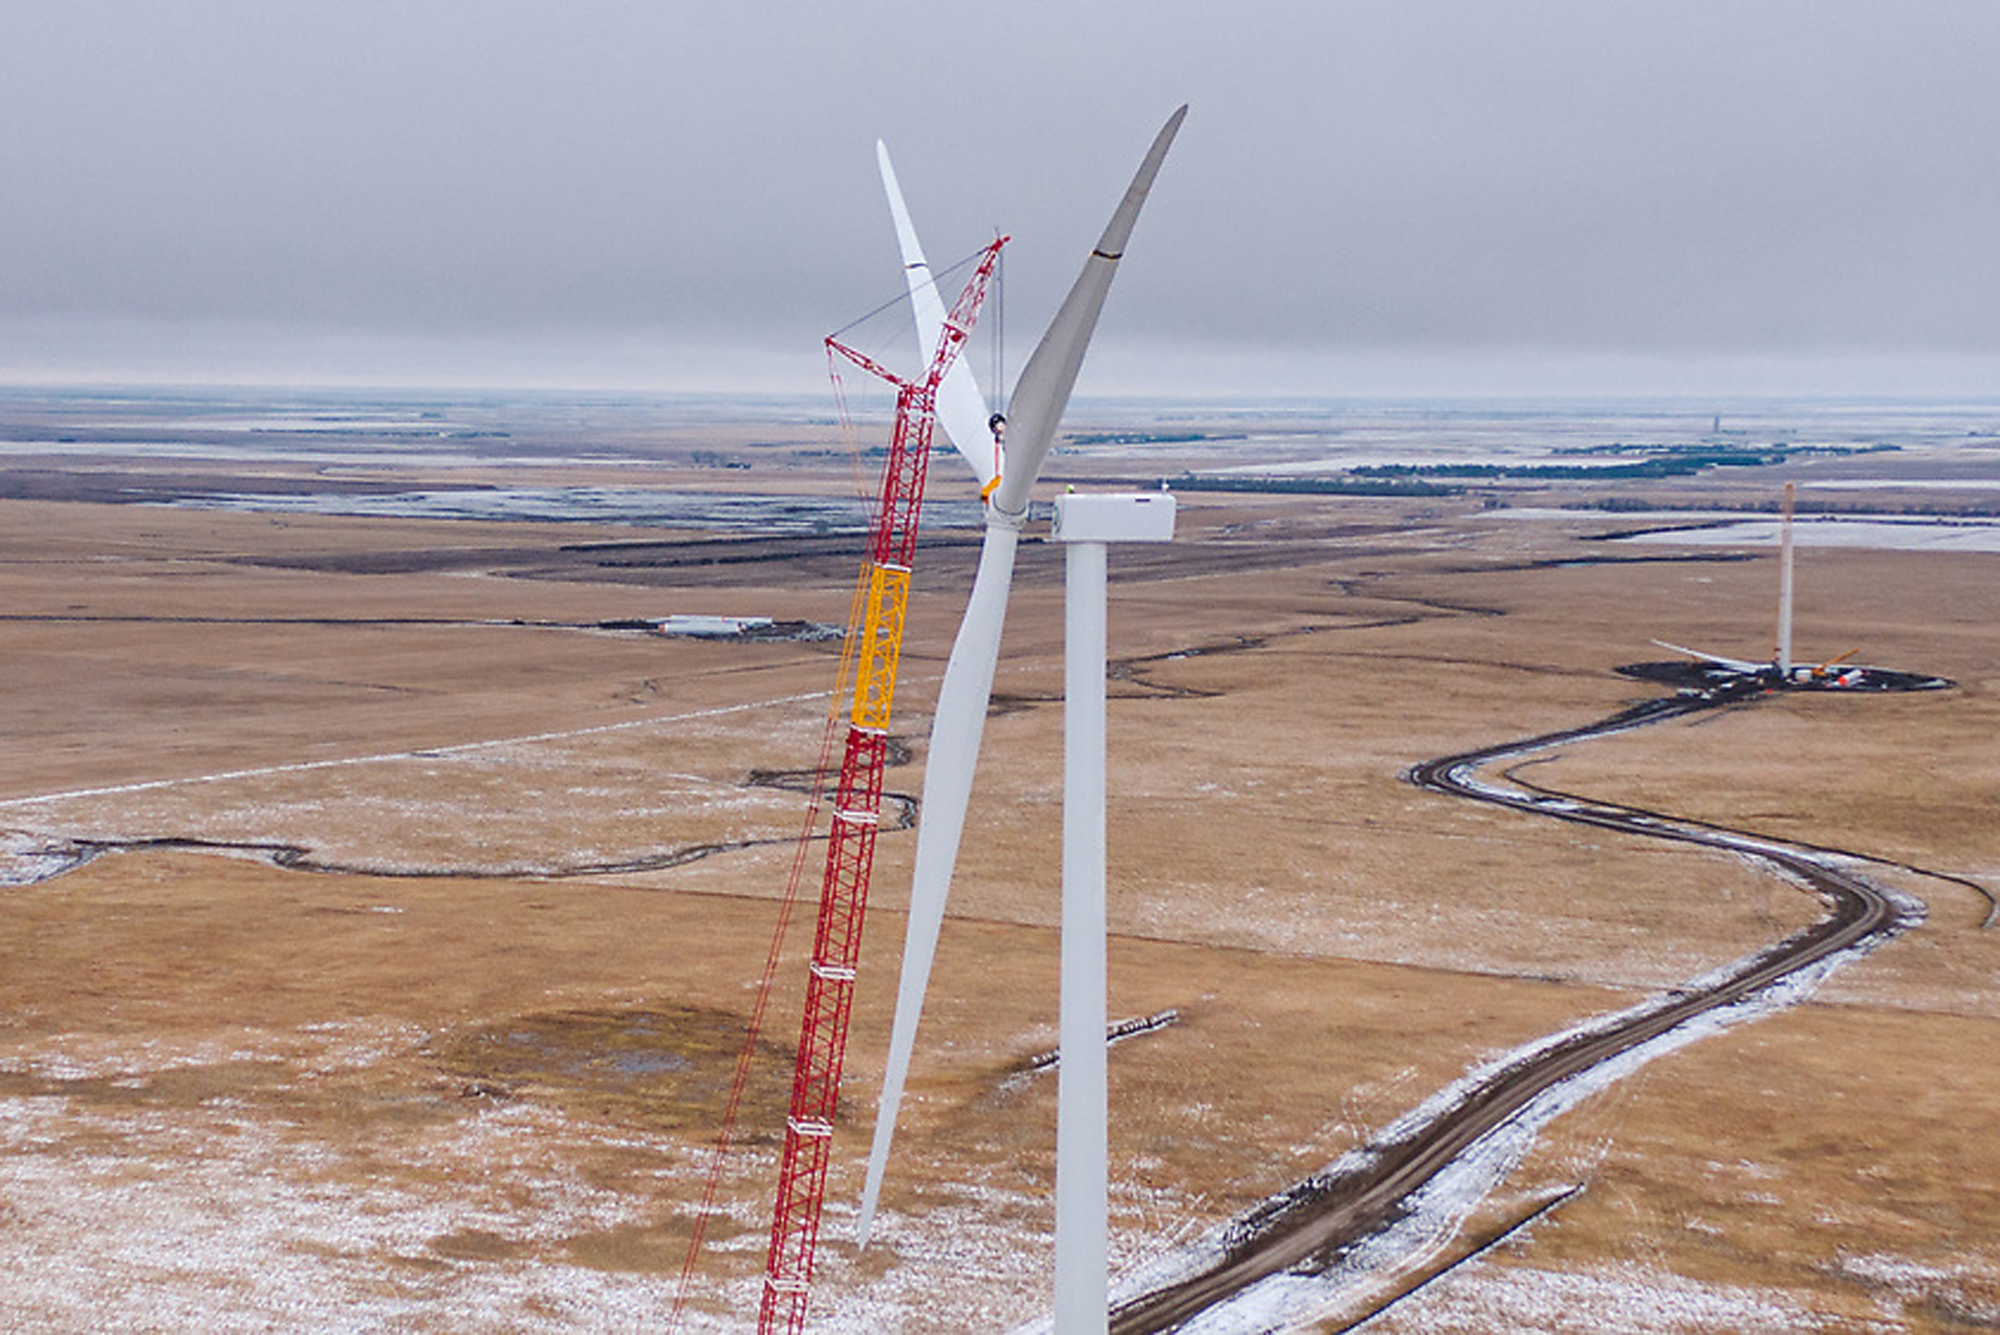 A photo of a wind turbine with a crane working on it